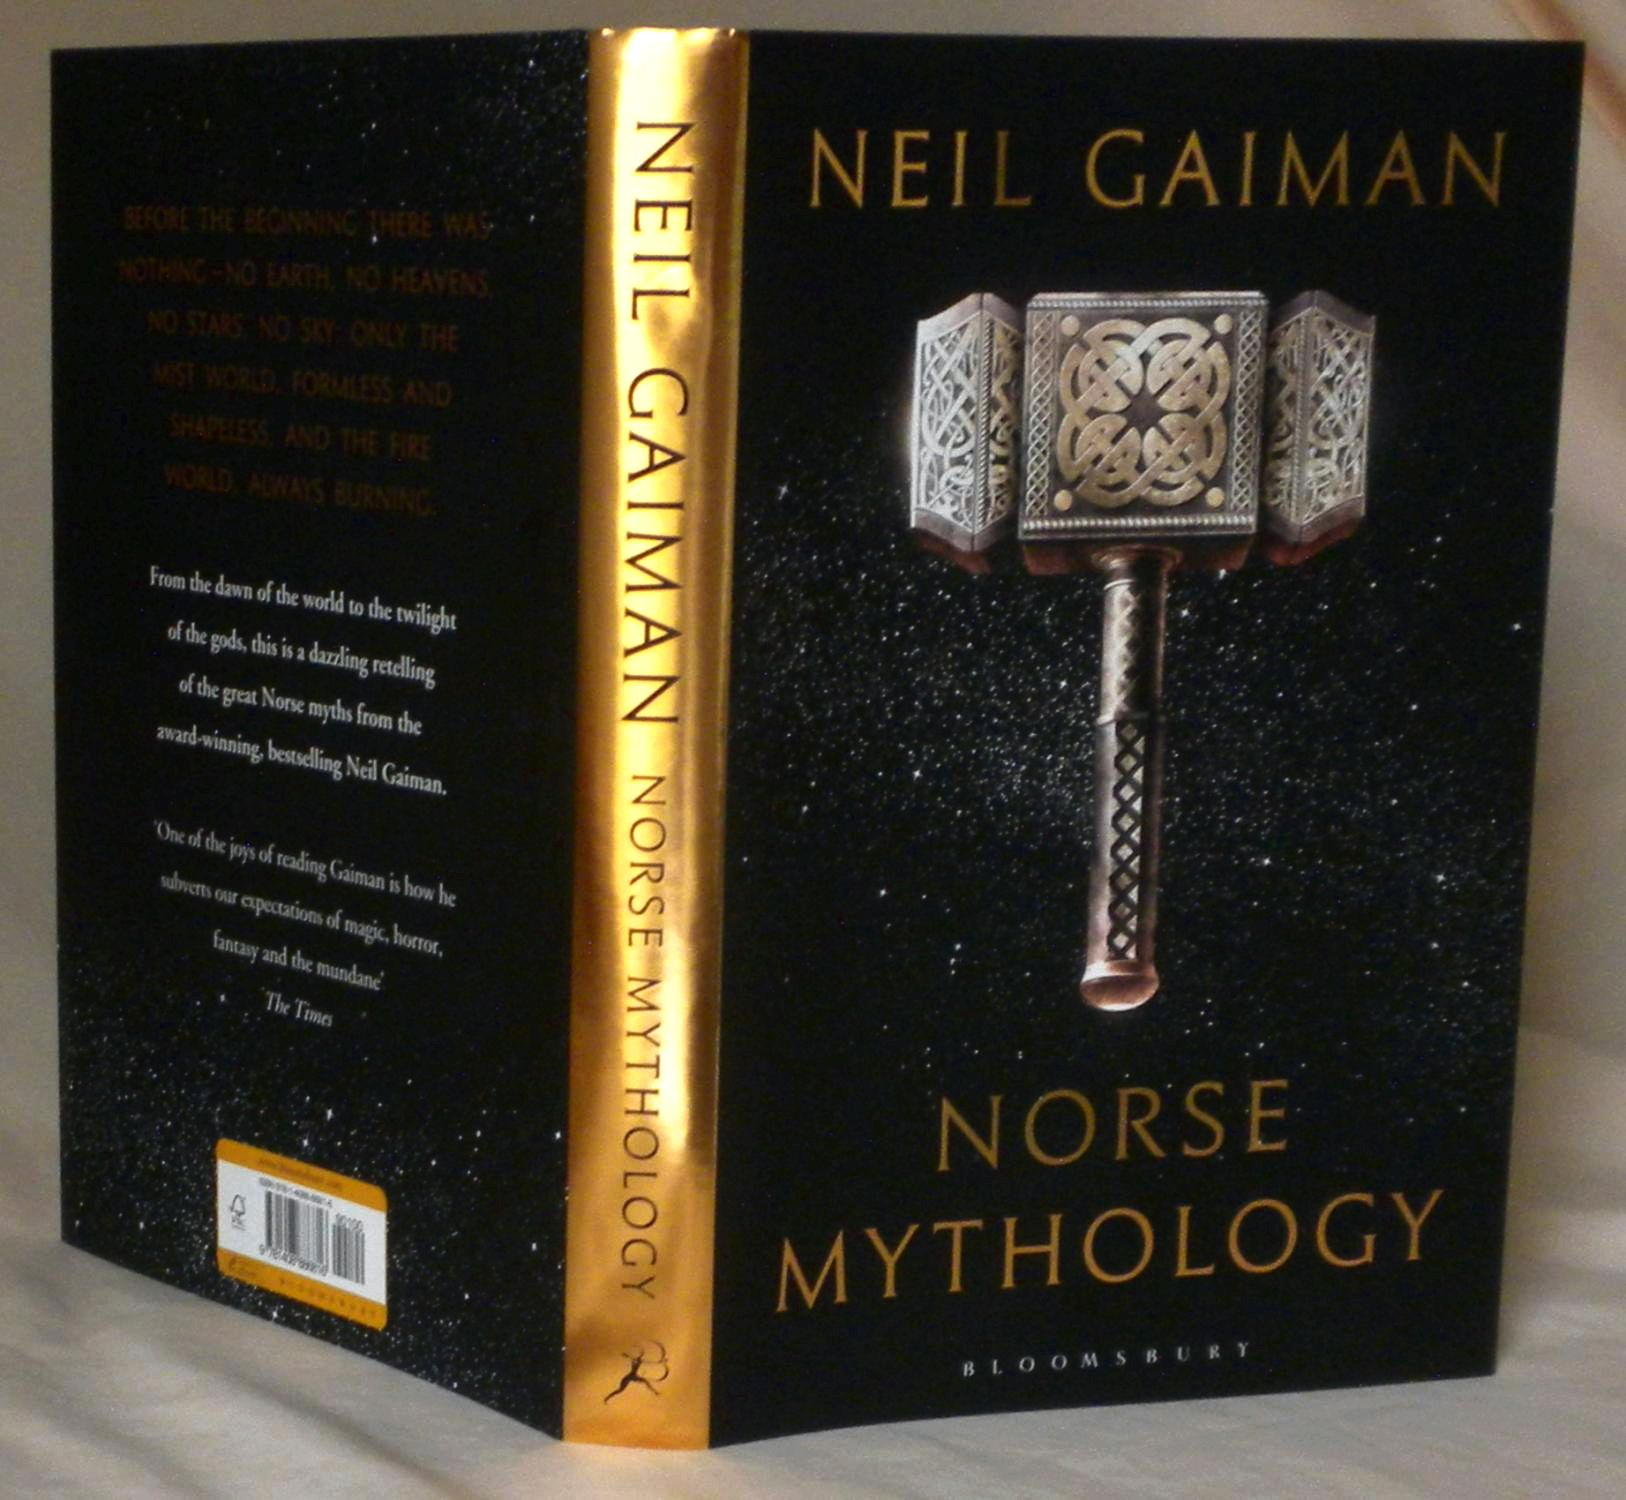 Neil gaiman's next book will explore norse mythology thoughprobably not